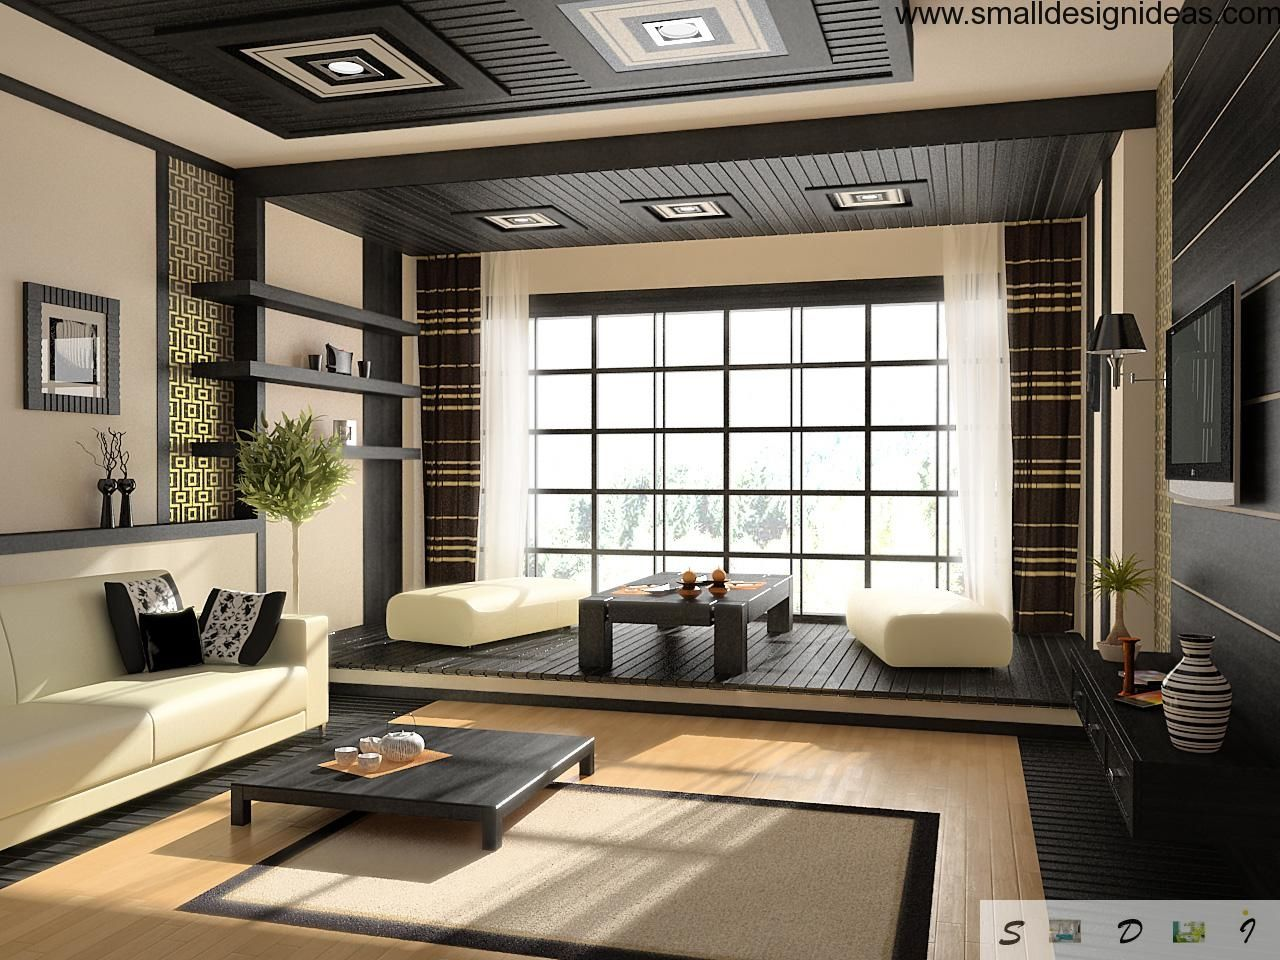 10 things to know before remodeling your interior into japanese interior design style concept interior design